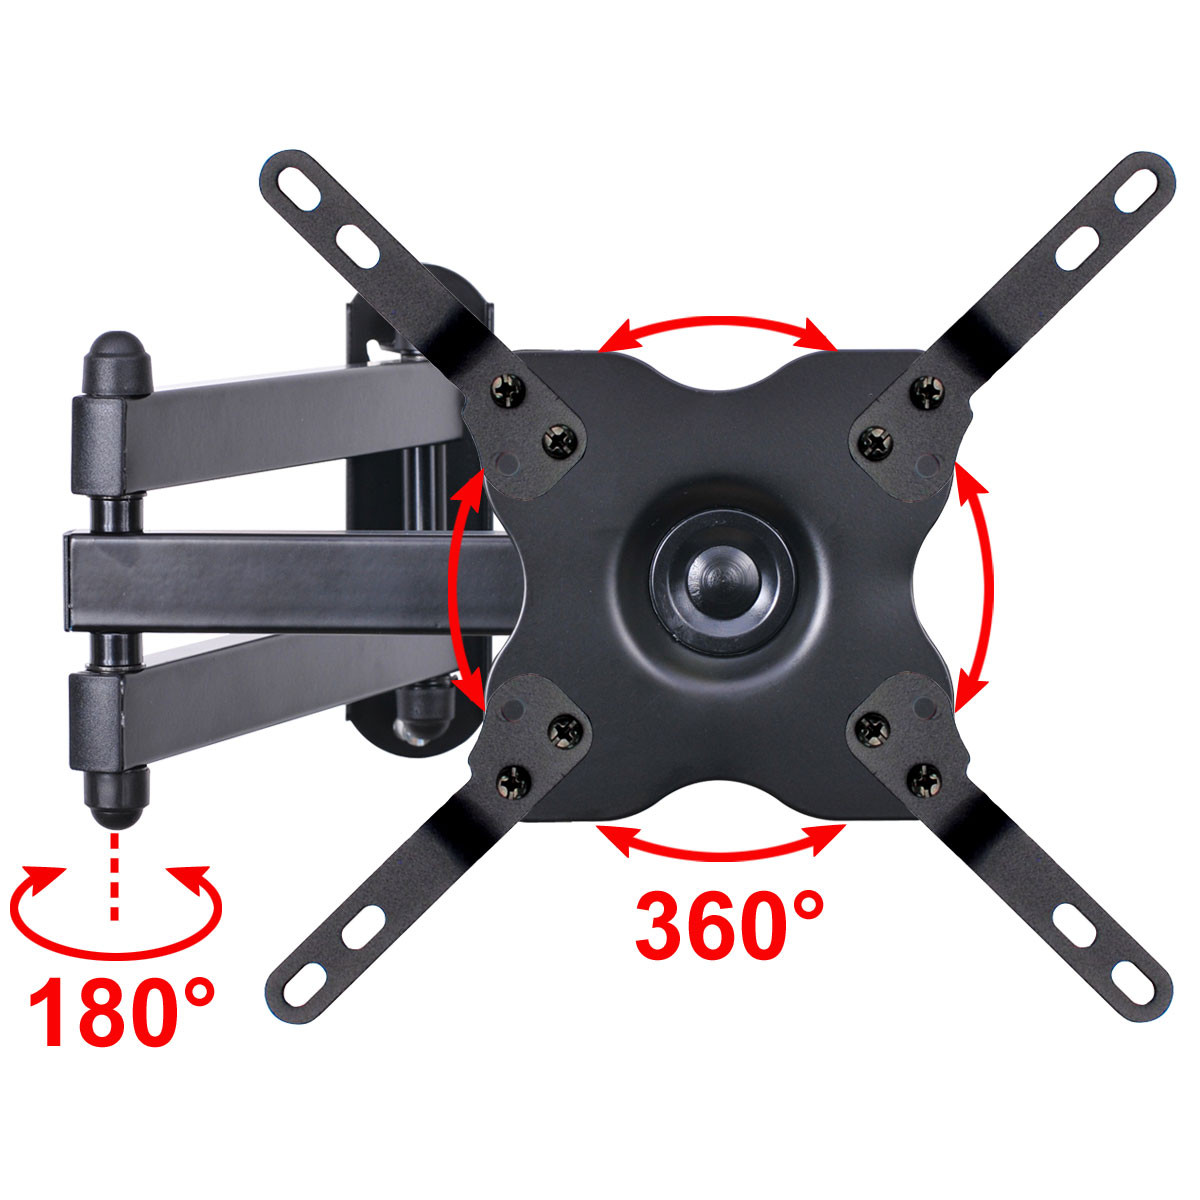 VideoSecu Tilt Swivel TV Wall Mount LCD LED Bracket for VIZIO 32 inch E24-C1 E28H-C1 D32h-C1 E320-B2 E320-A1 E320-B1 WS2